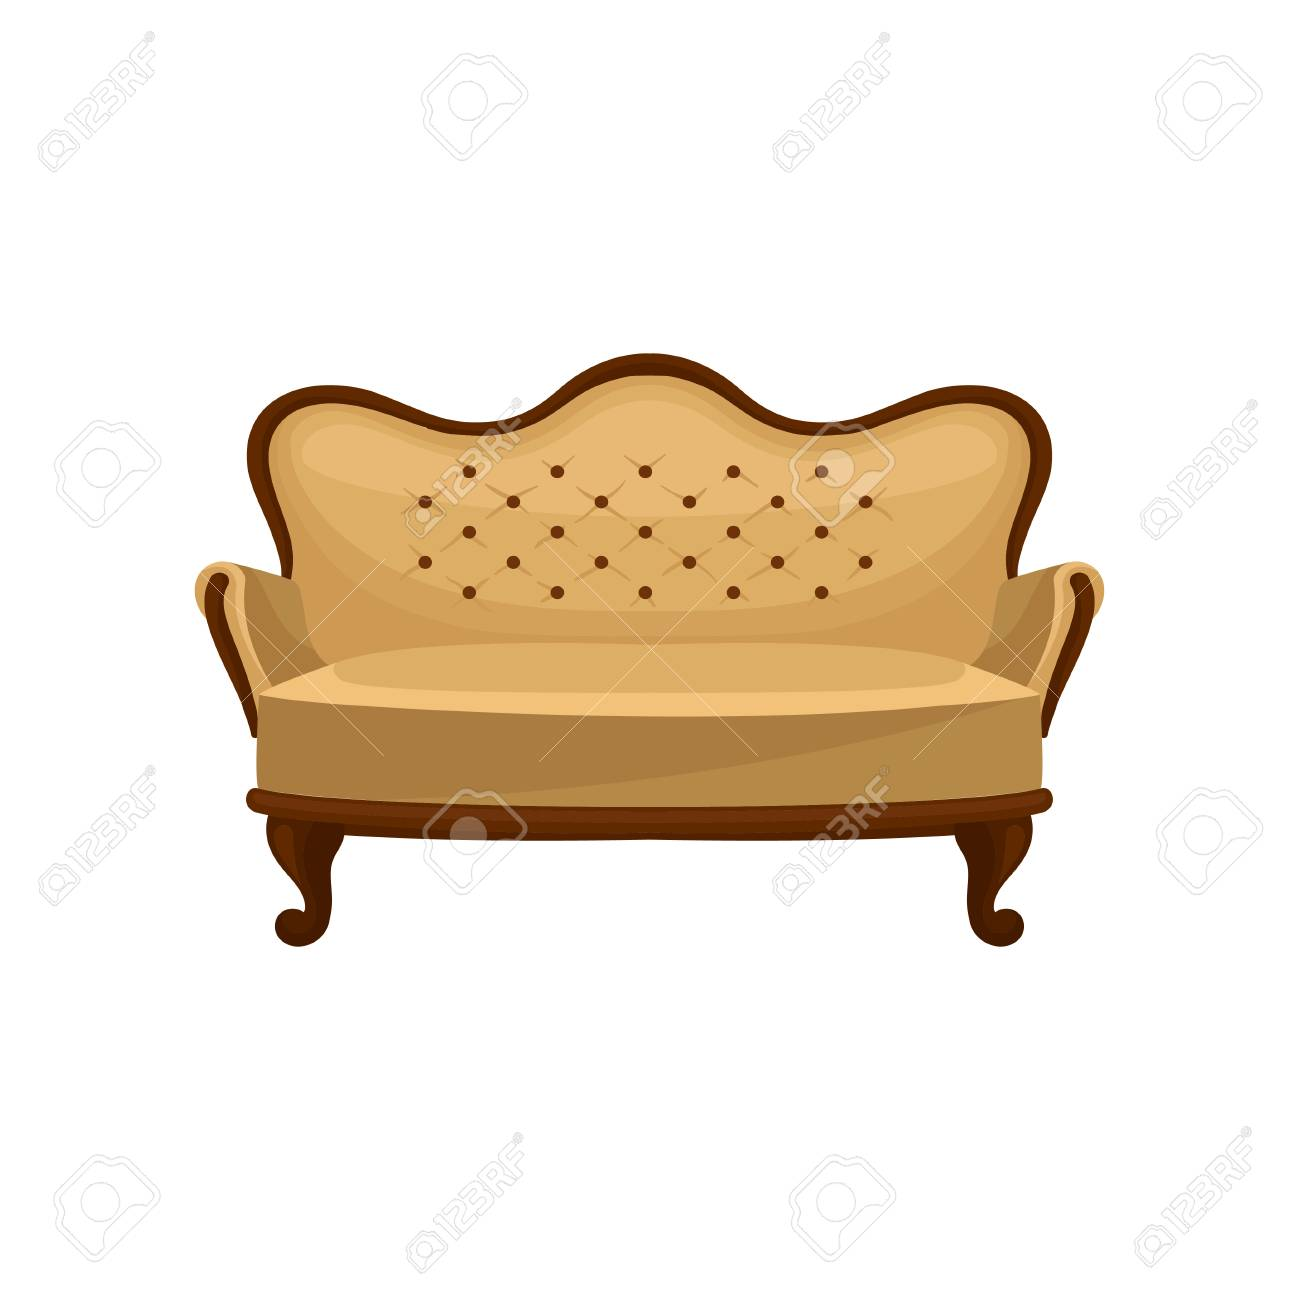 Cartoon Icon Of Classic Vintage Couch Wooden Sofa With Beige